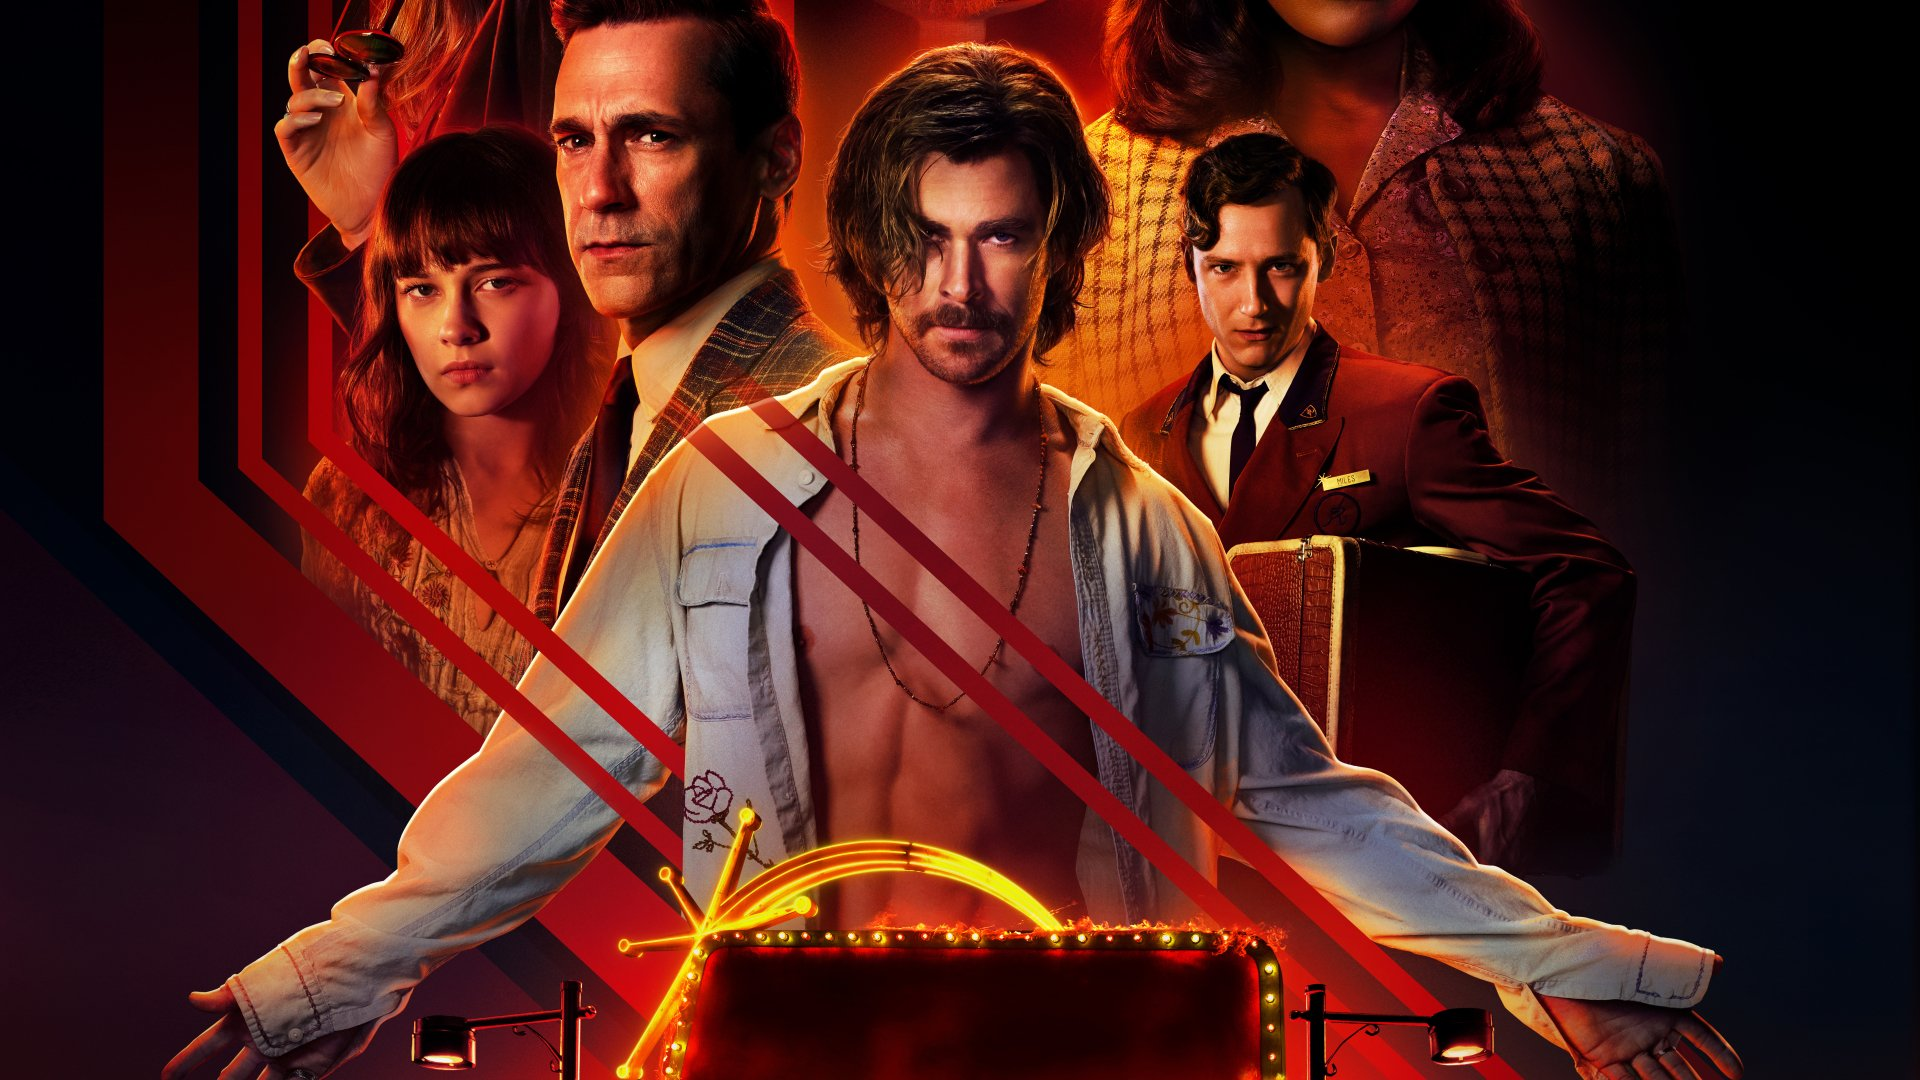 17 Bad Times At The El Royale Hd Wallpapers Background Images